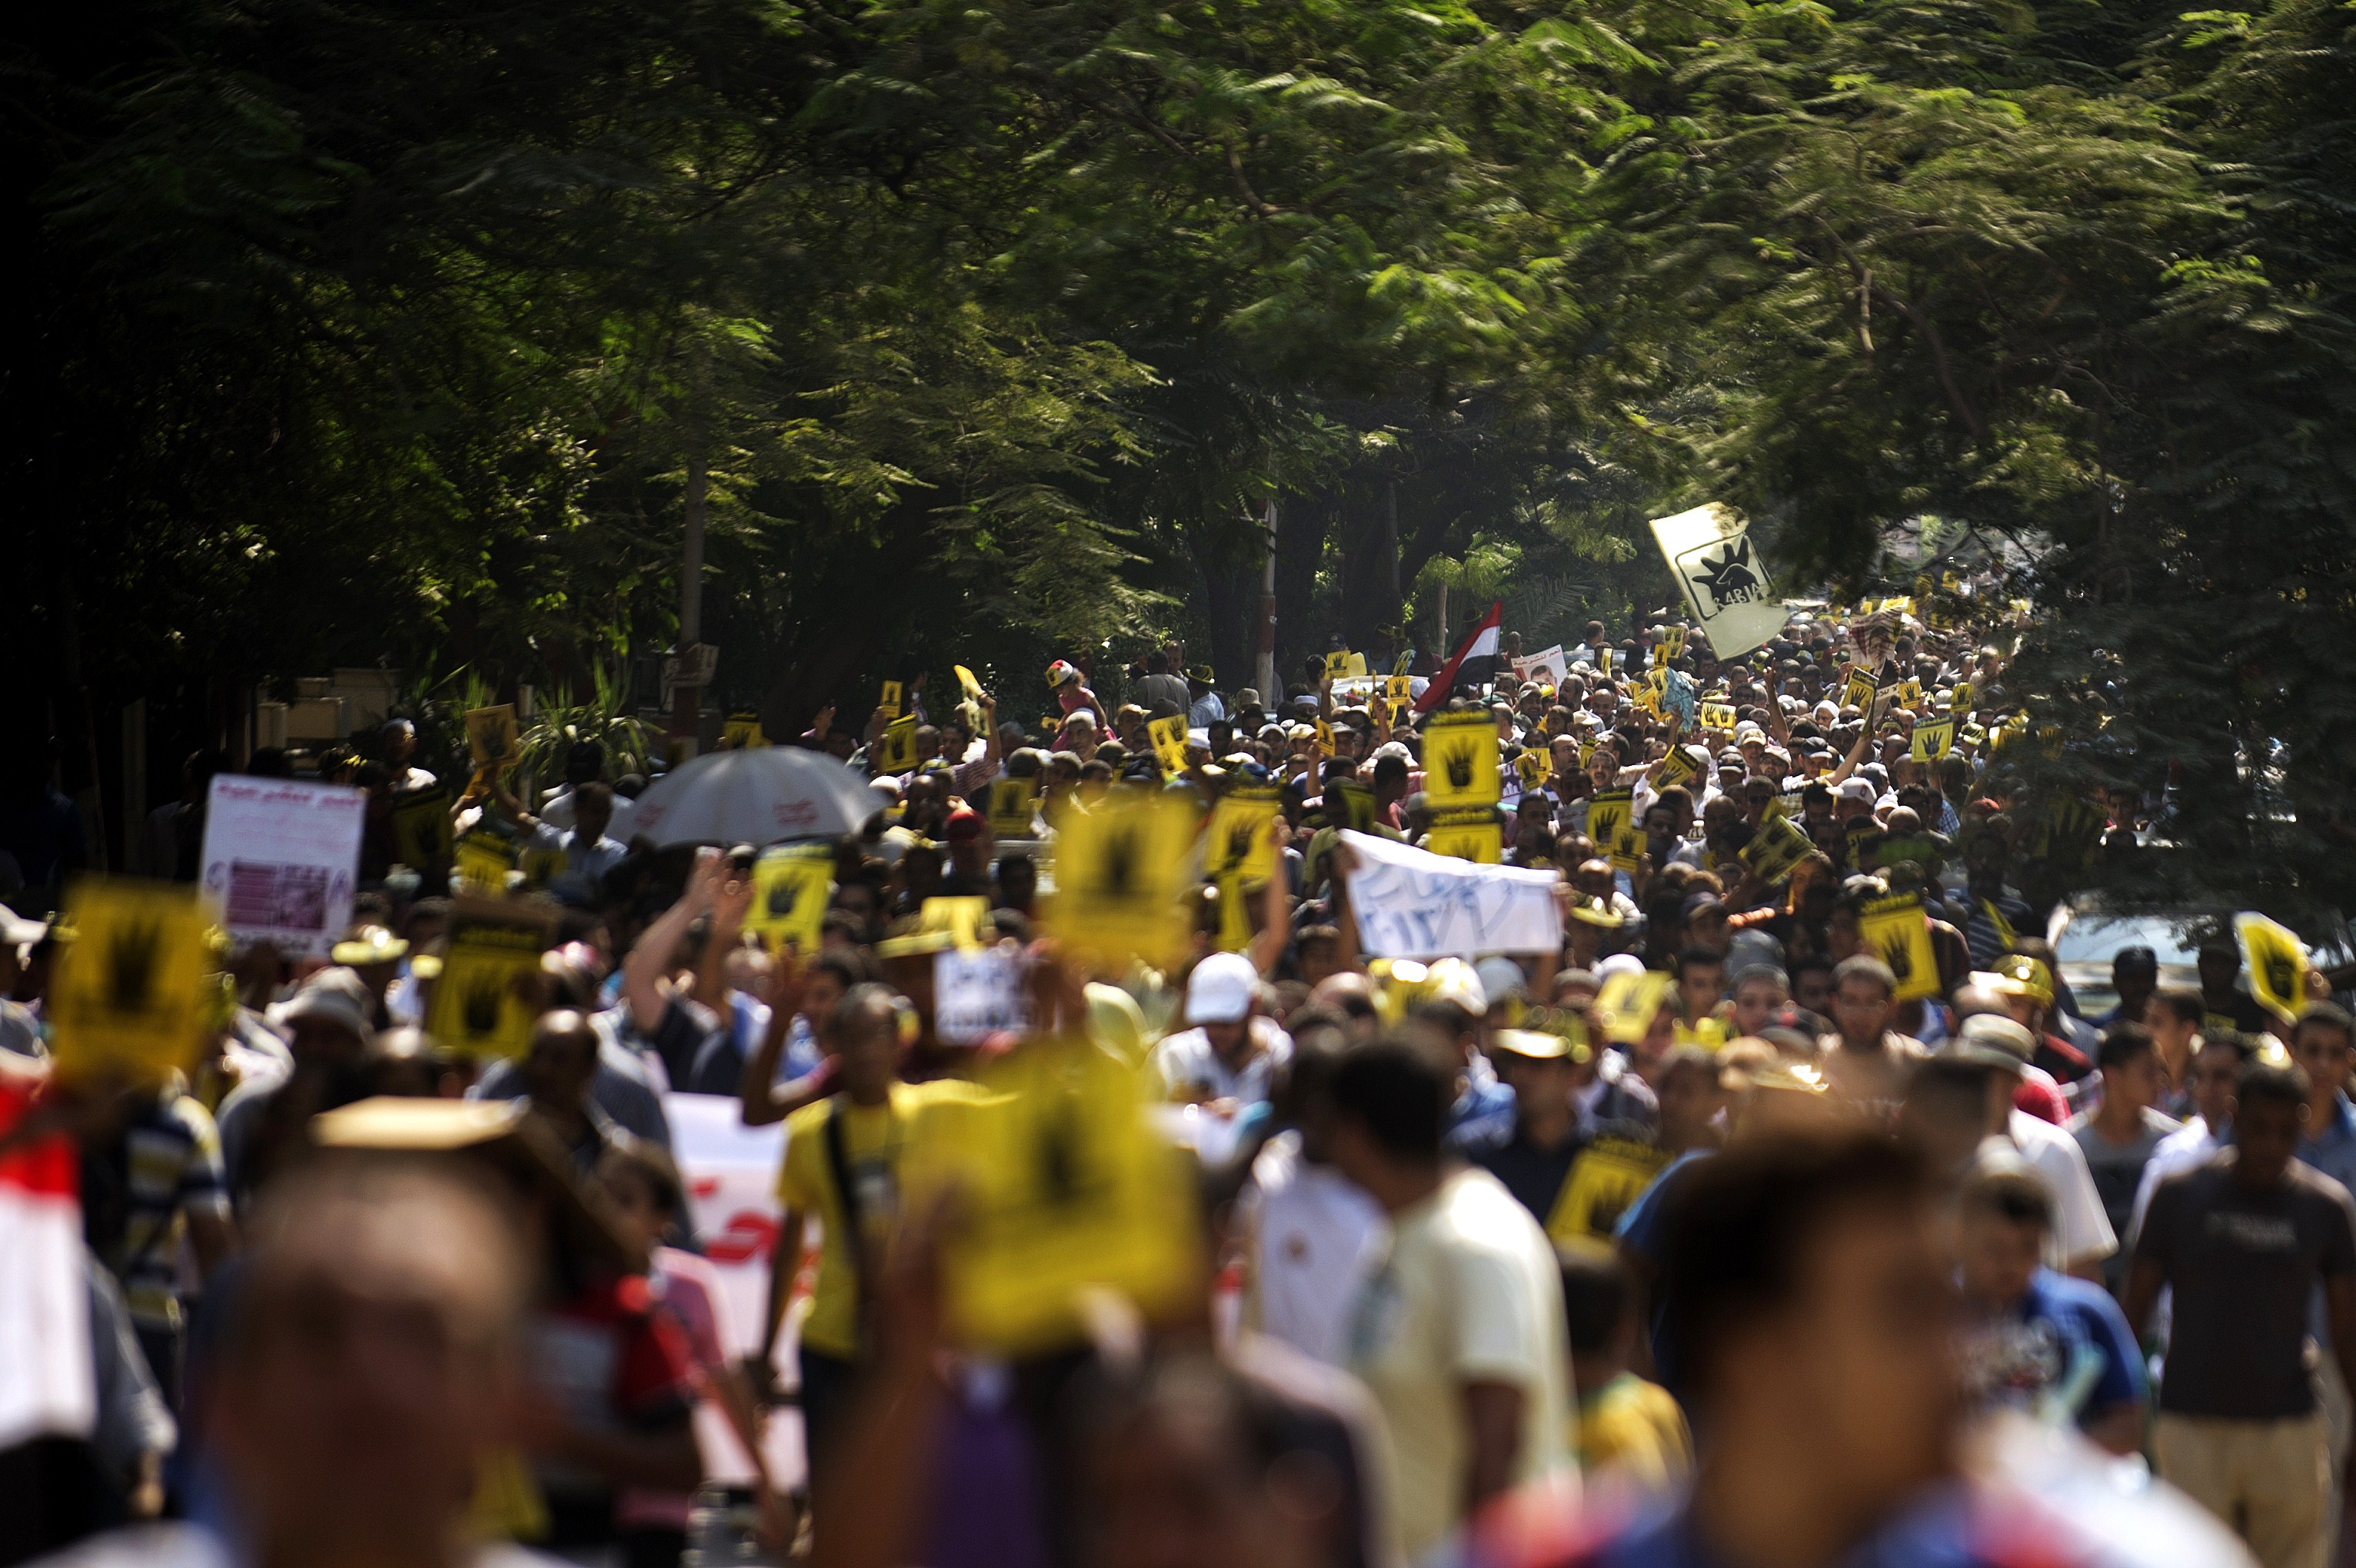 Members of the Muslim Brotherhood and supporters of ousted President Mohamed Morsi march through Cairo's Maadi Neighborhood on September 6, 2013.  (AFP Photo)